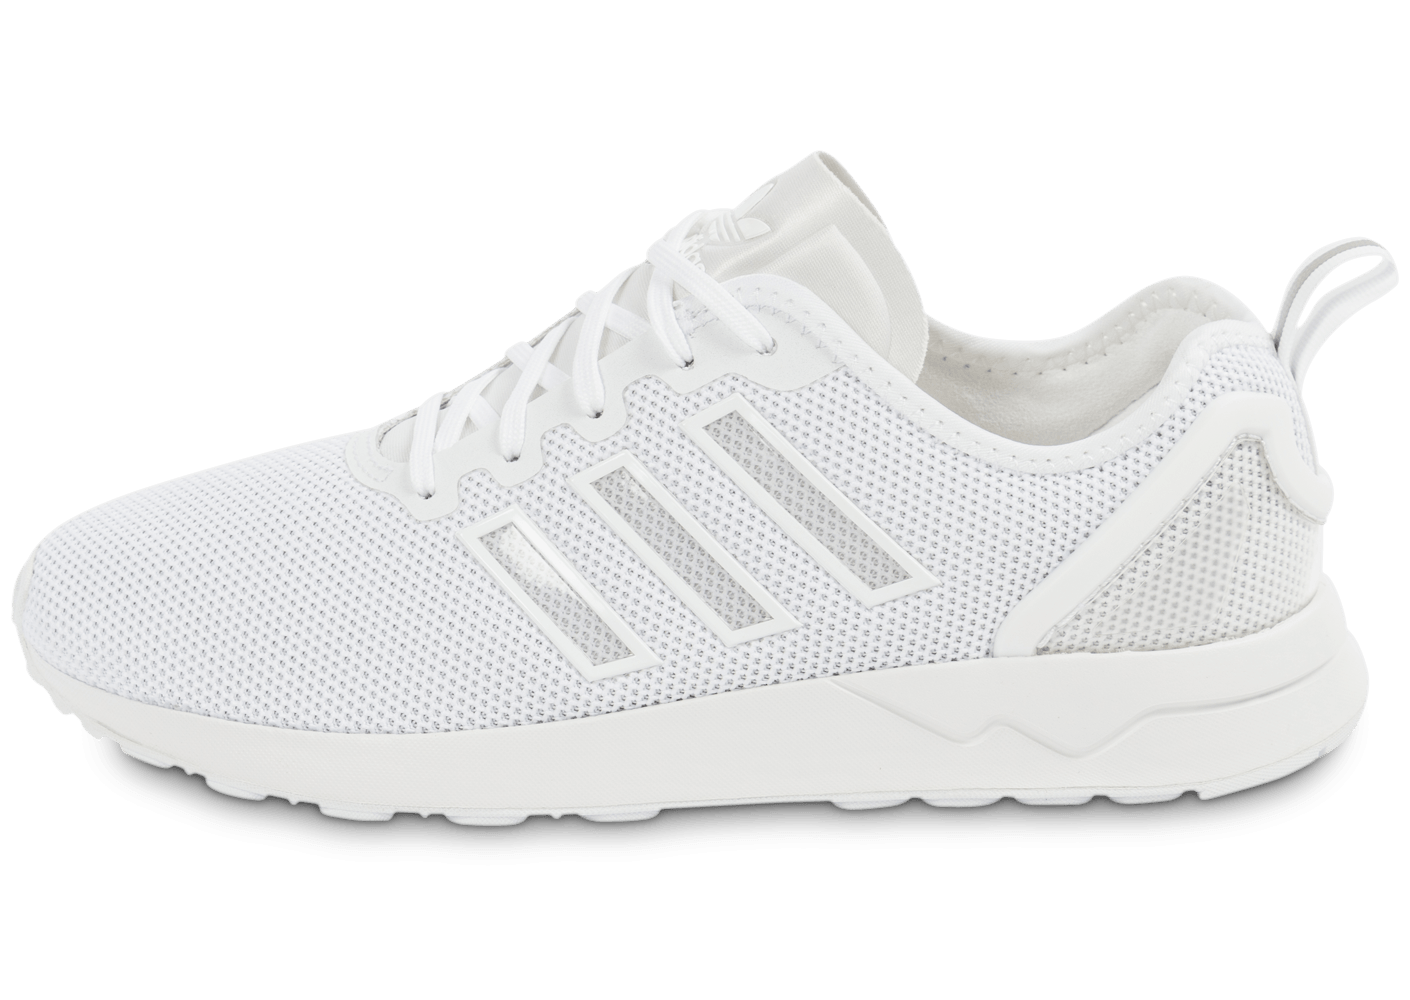 adidas zx flux adv racer blanche chaussures homme chausport. Black Bedroom Furniture Sets. Home Design Ideas